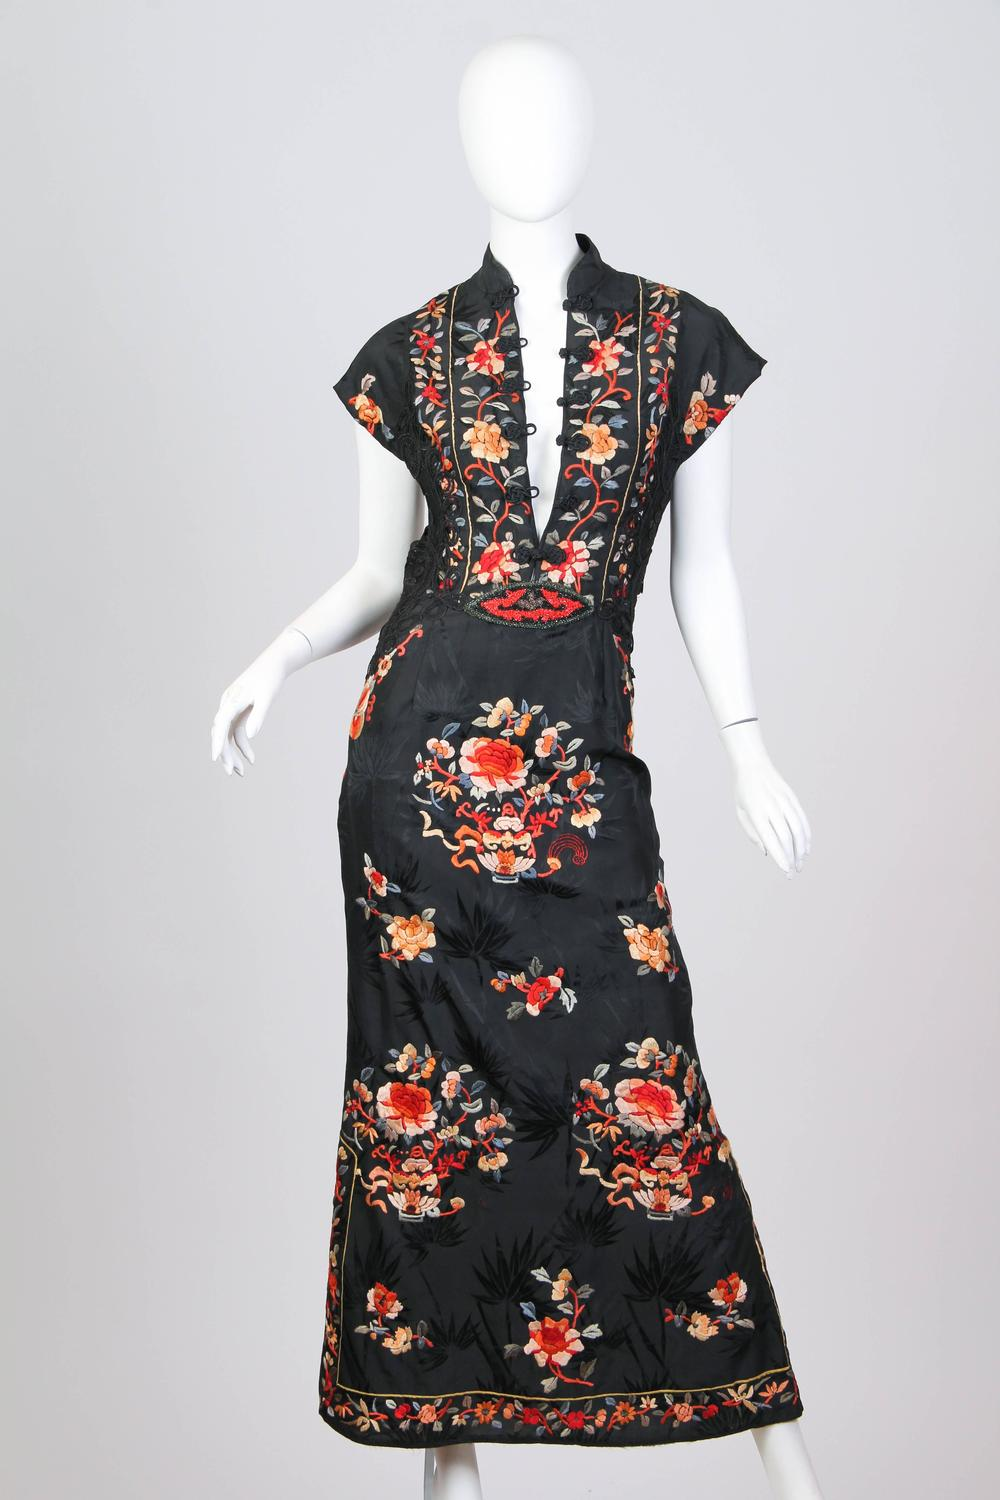 Backless Hand Embroidered Chinese Dress With Victorian